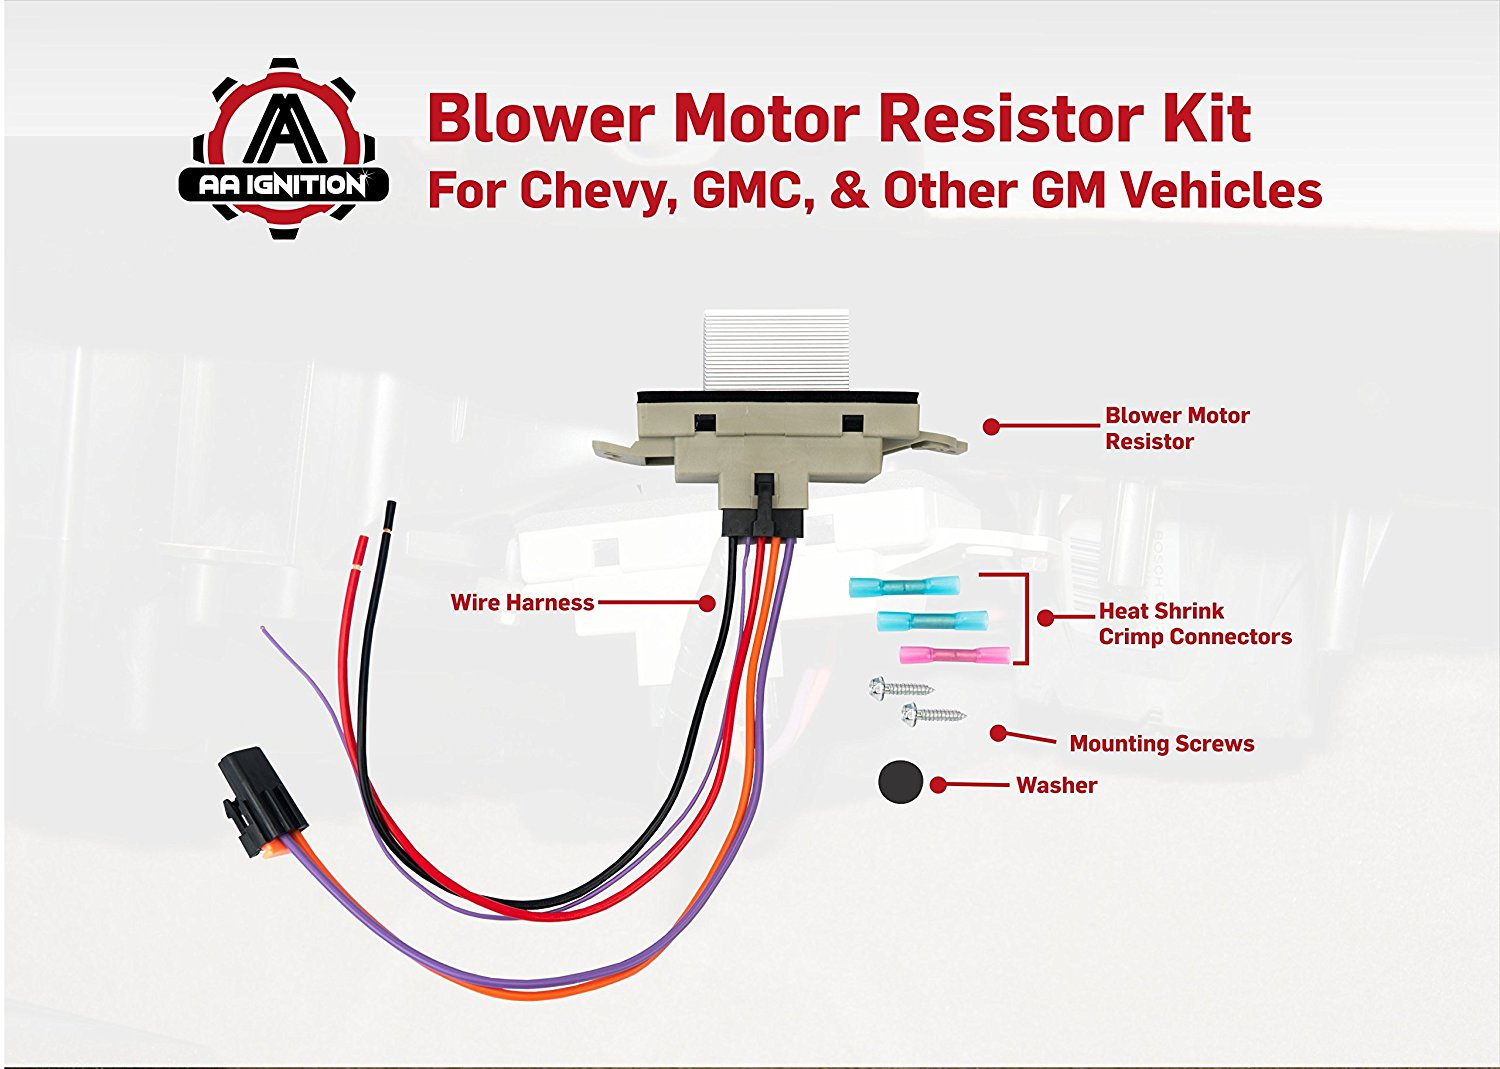 hight resolution of aa ignition products 1 new blower module